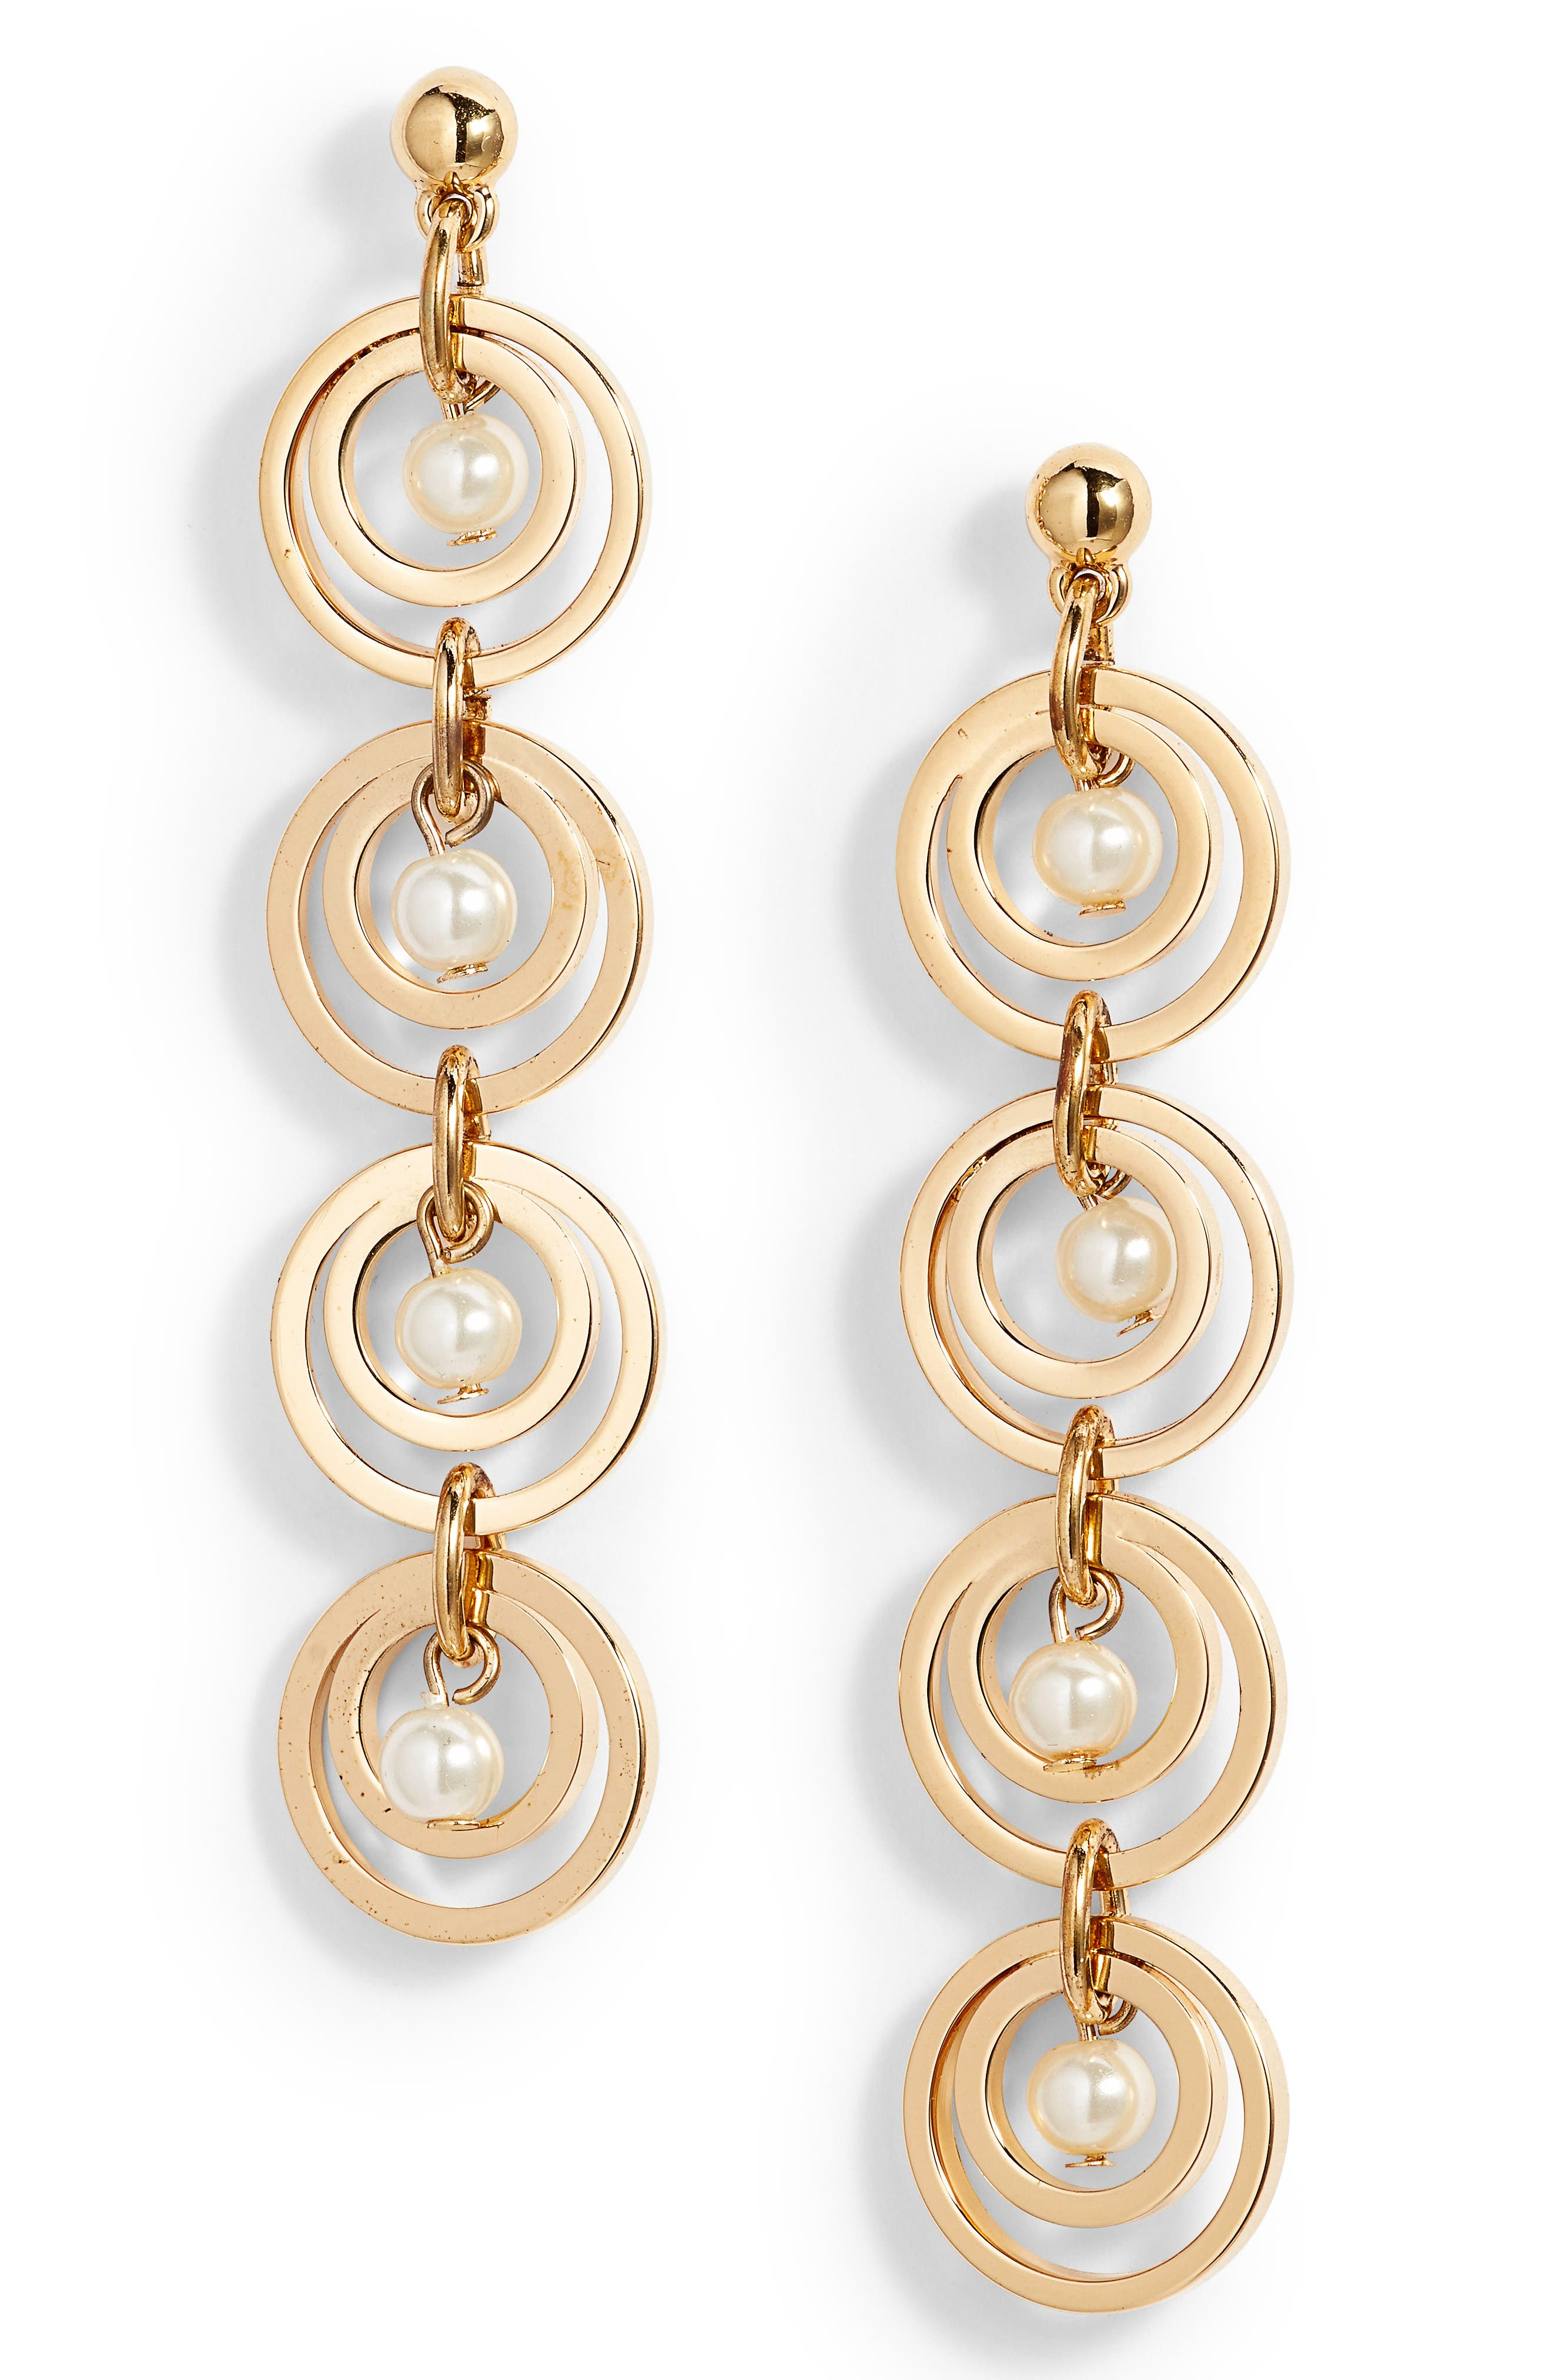 Tiered Hoop Earrings with Imitation Pearl,                             Main thumbnail 1, color,